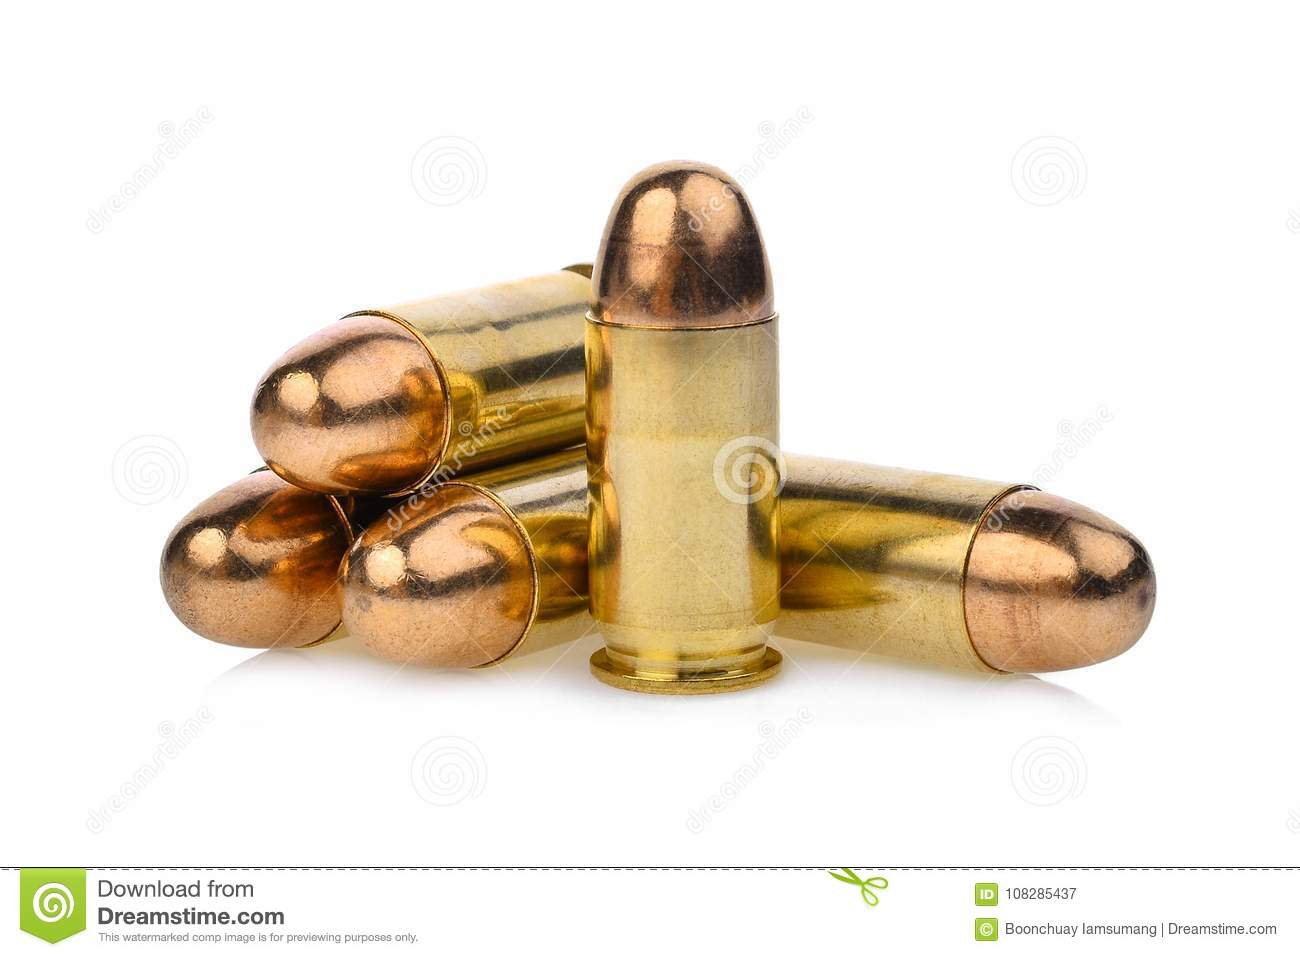 Cartridges of .45 ACP pistols ammo, full metal jacket